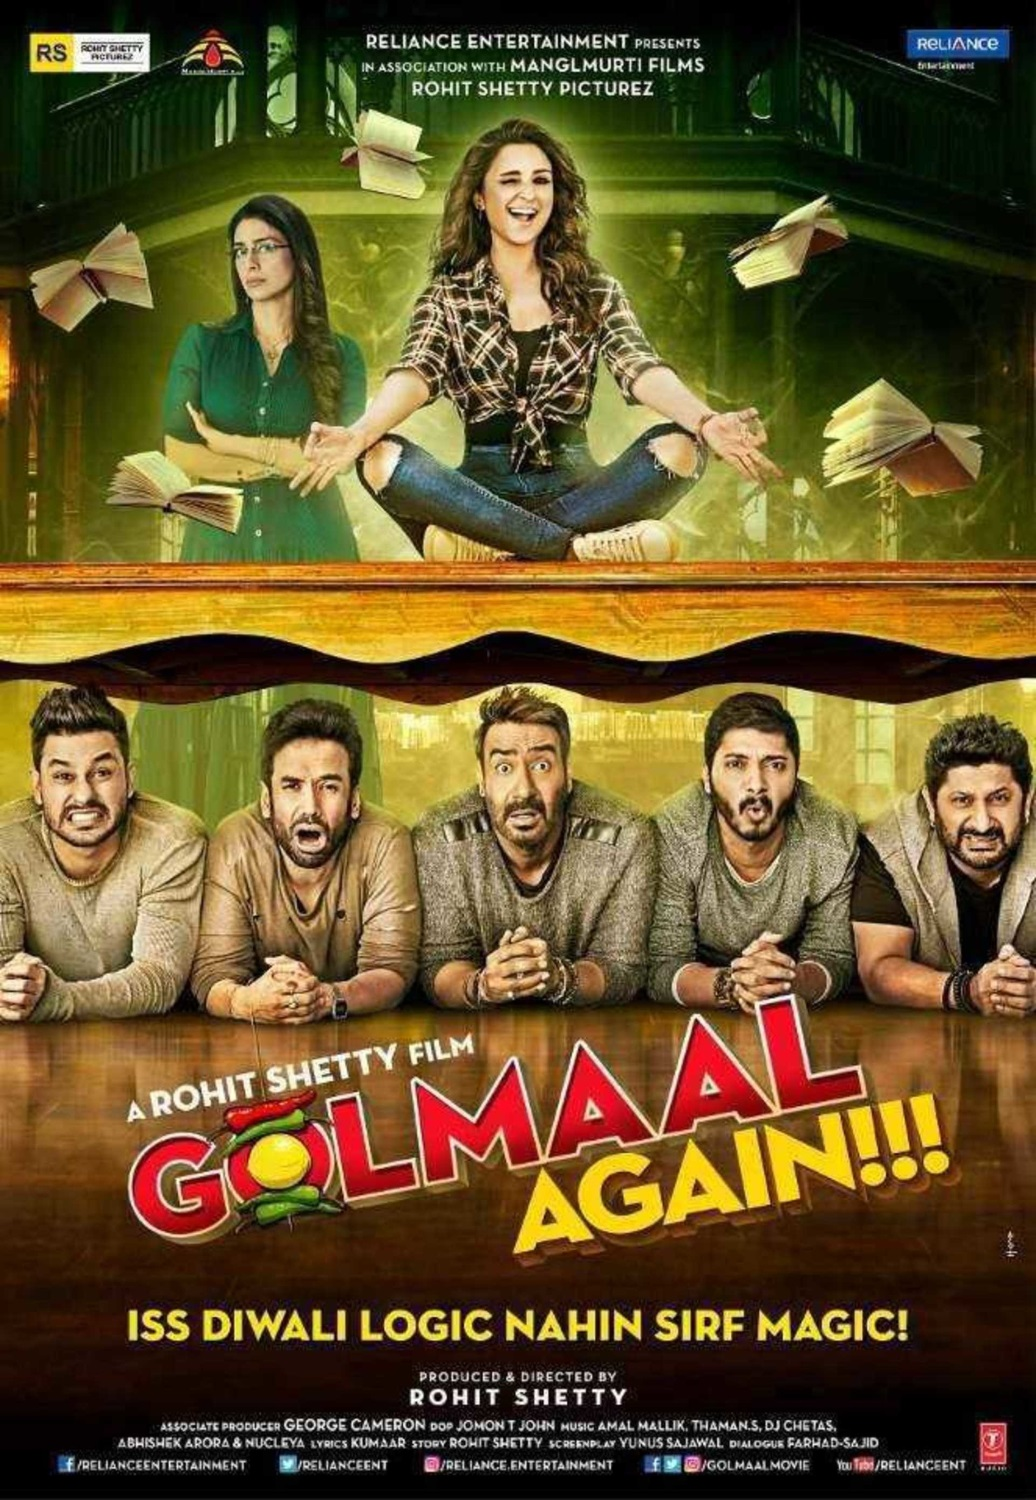 Golmaal Again (2017) (MUSIC VIDEO ALBUM) Untouched – BD50 DOLBY ATMOS TrueHD 7.1 ESuBS